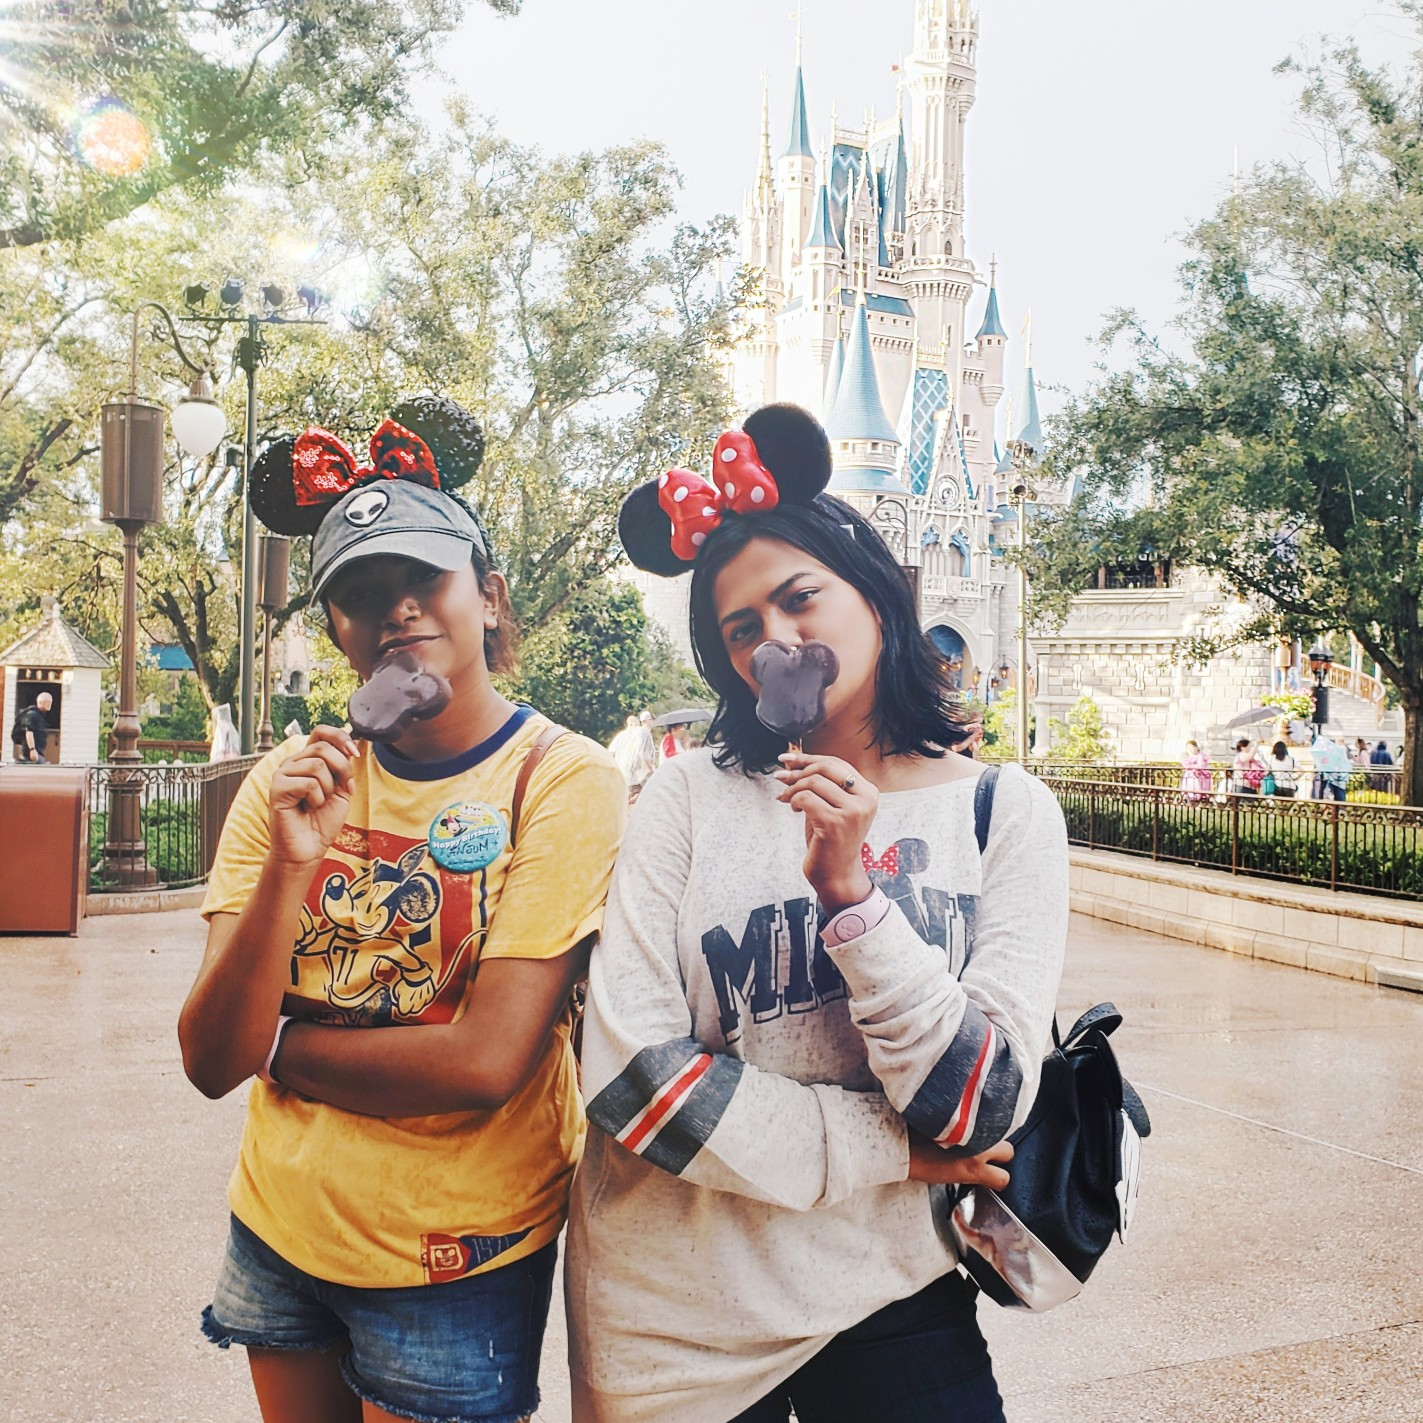 Sisters Posing In front of Cinderella Castle with Mickey Ears Ice Cream